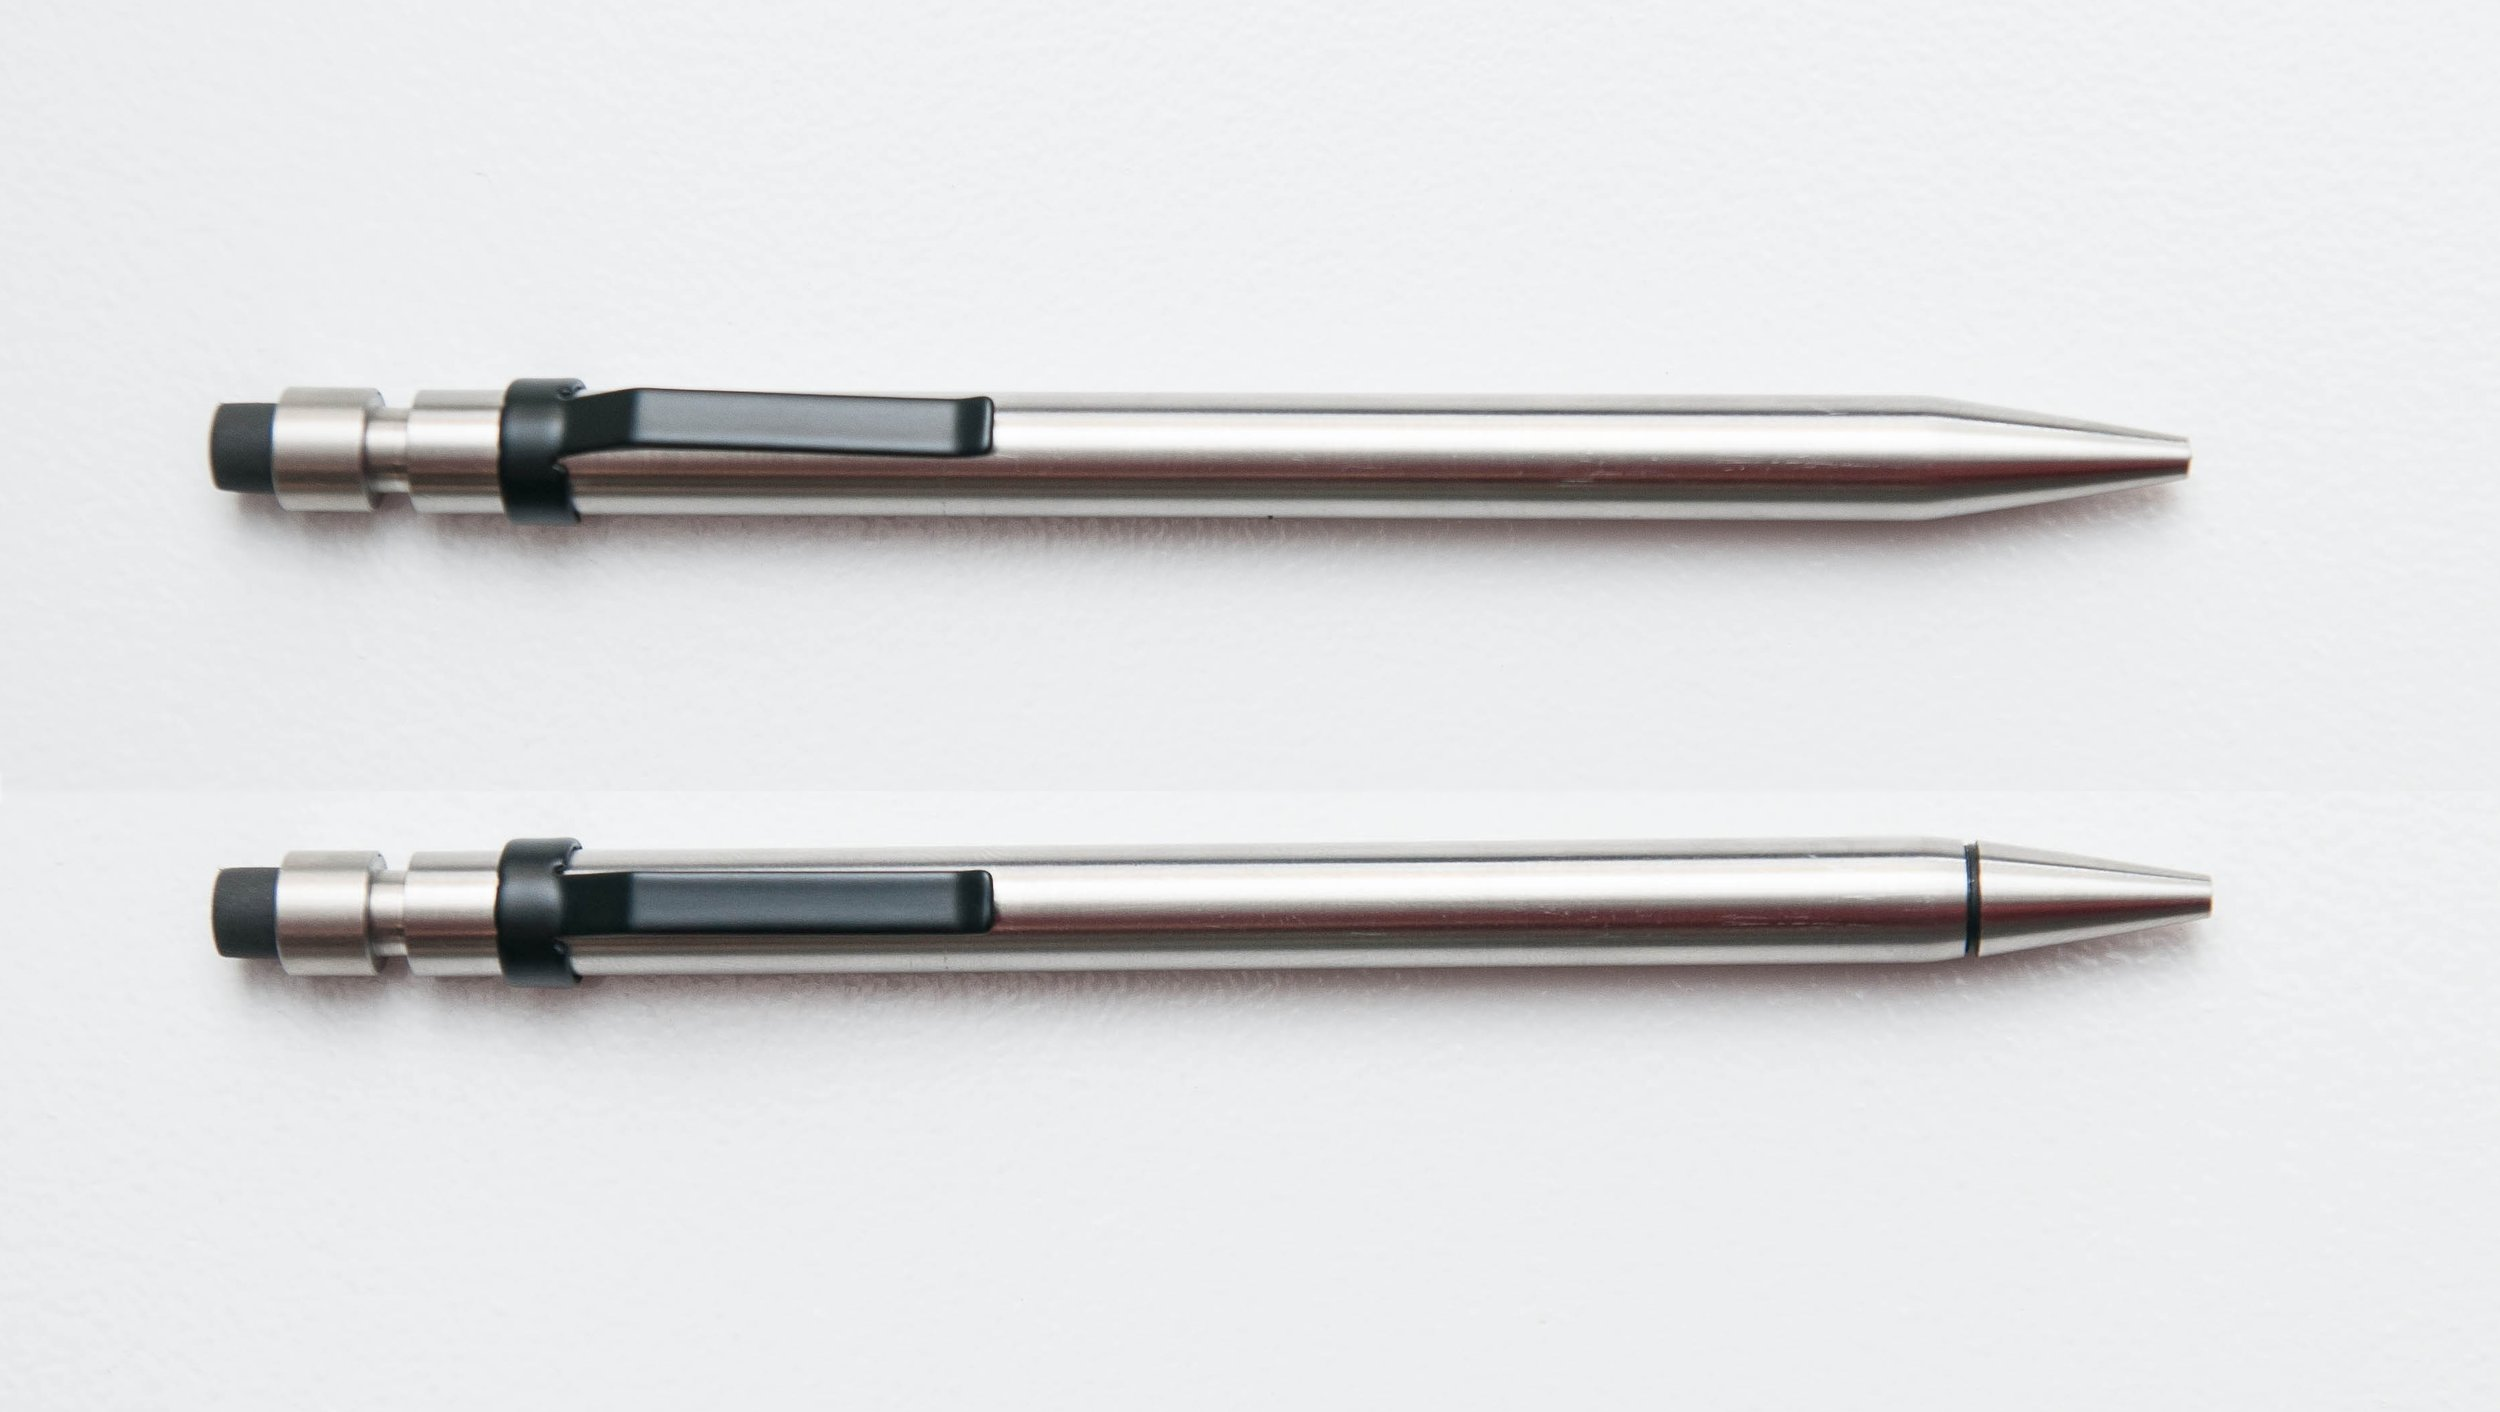 Modern Fuel Pencil Tolerances